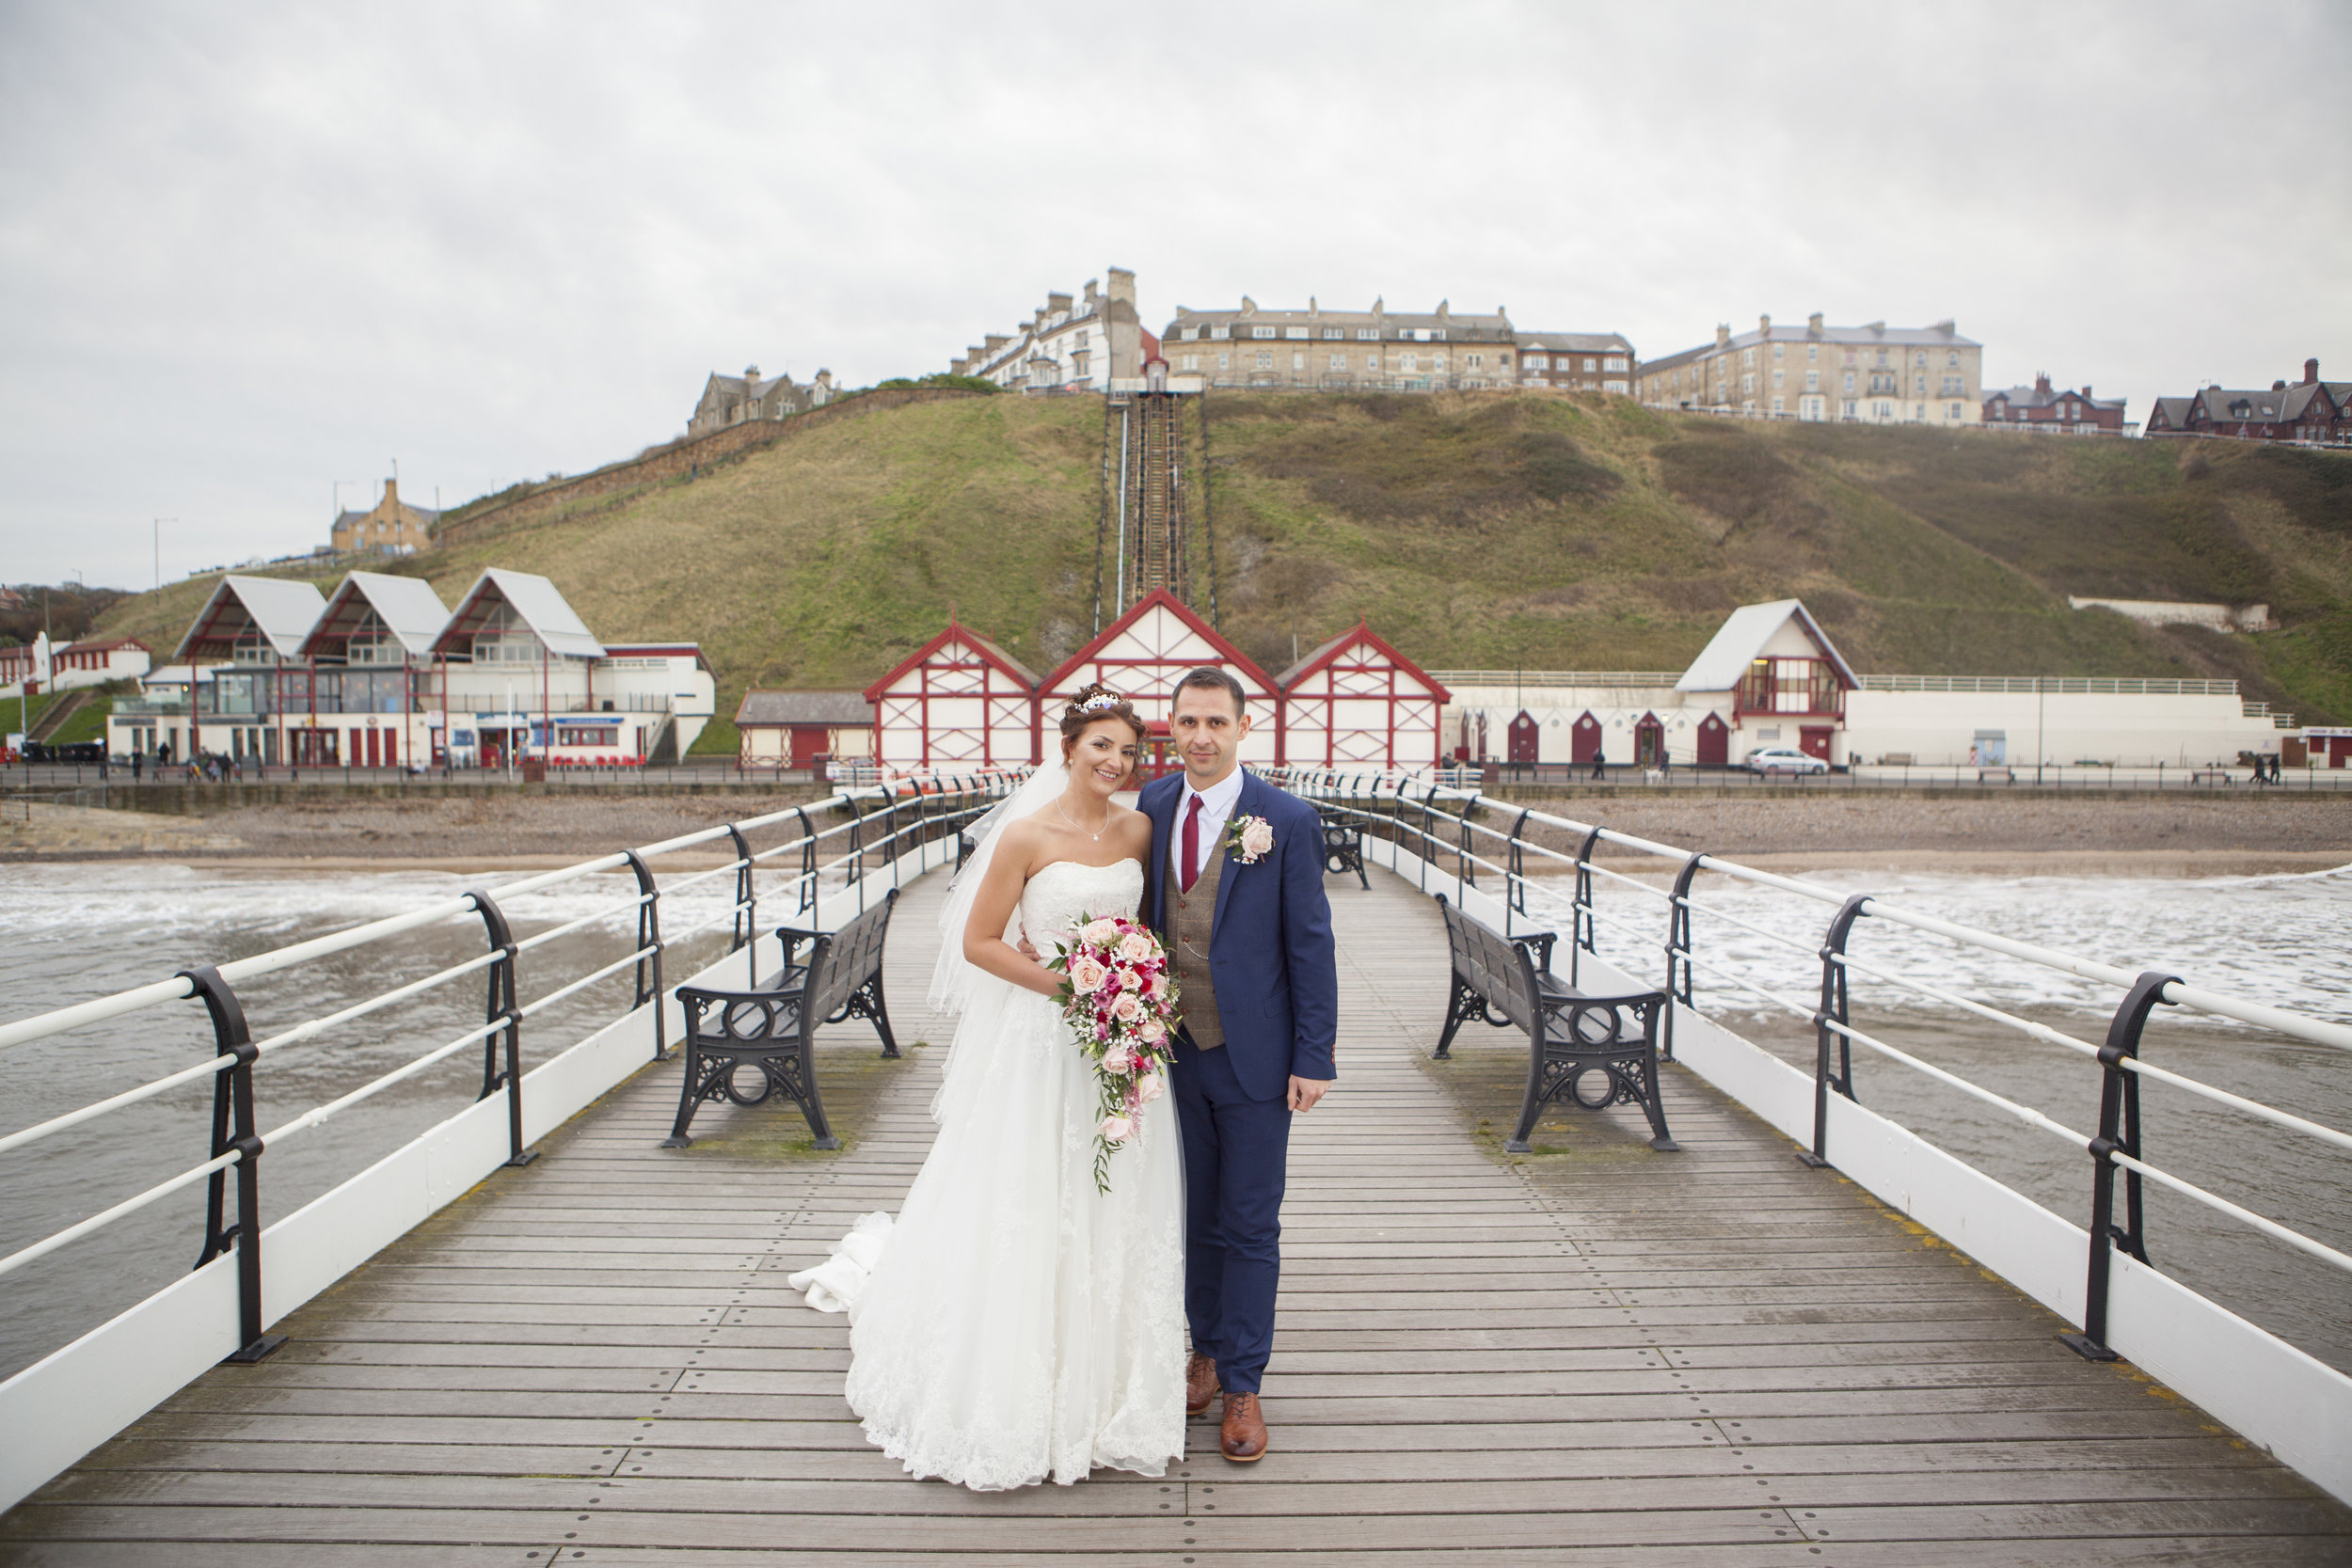 Laura & Darren, The Spa Hotel, Saltburn, 17_11_17_219.jpg